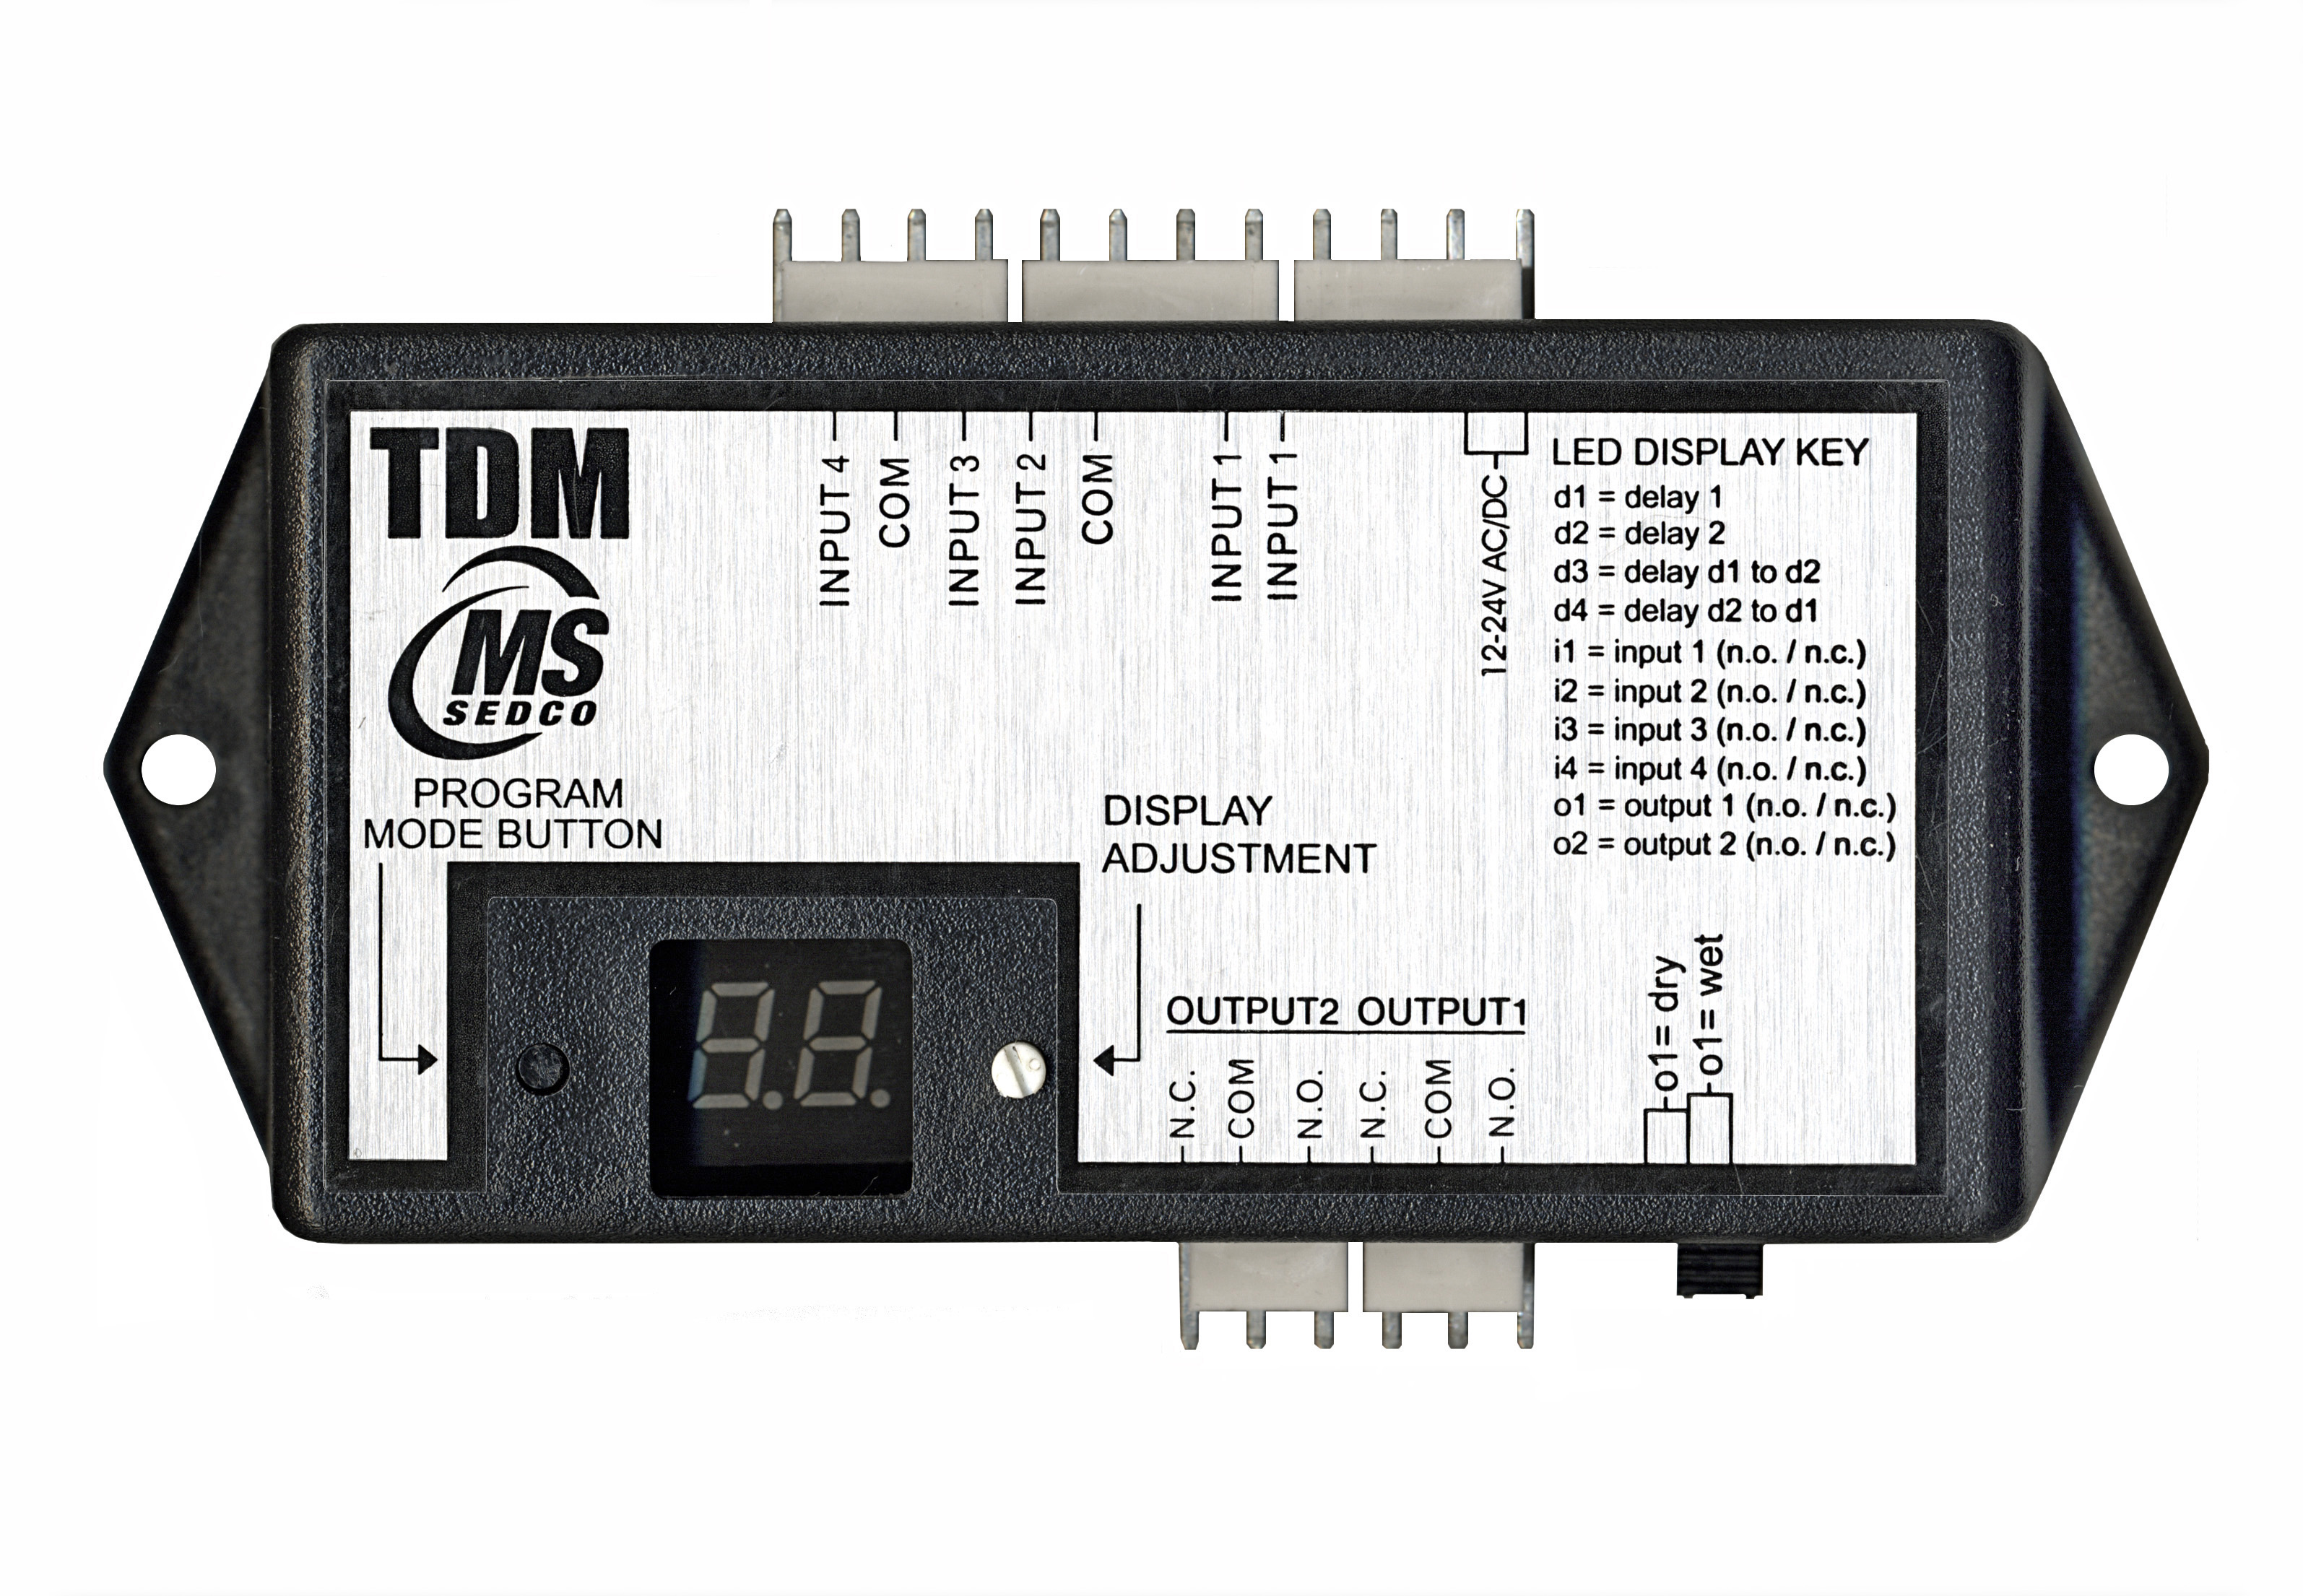 Ms Sedco Timers Relay Lockouts Archives Related Links Delay Timer Electronic Switch More Circuit Tdm Universal Time Module